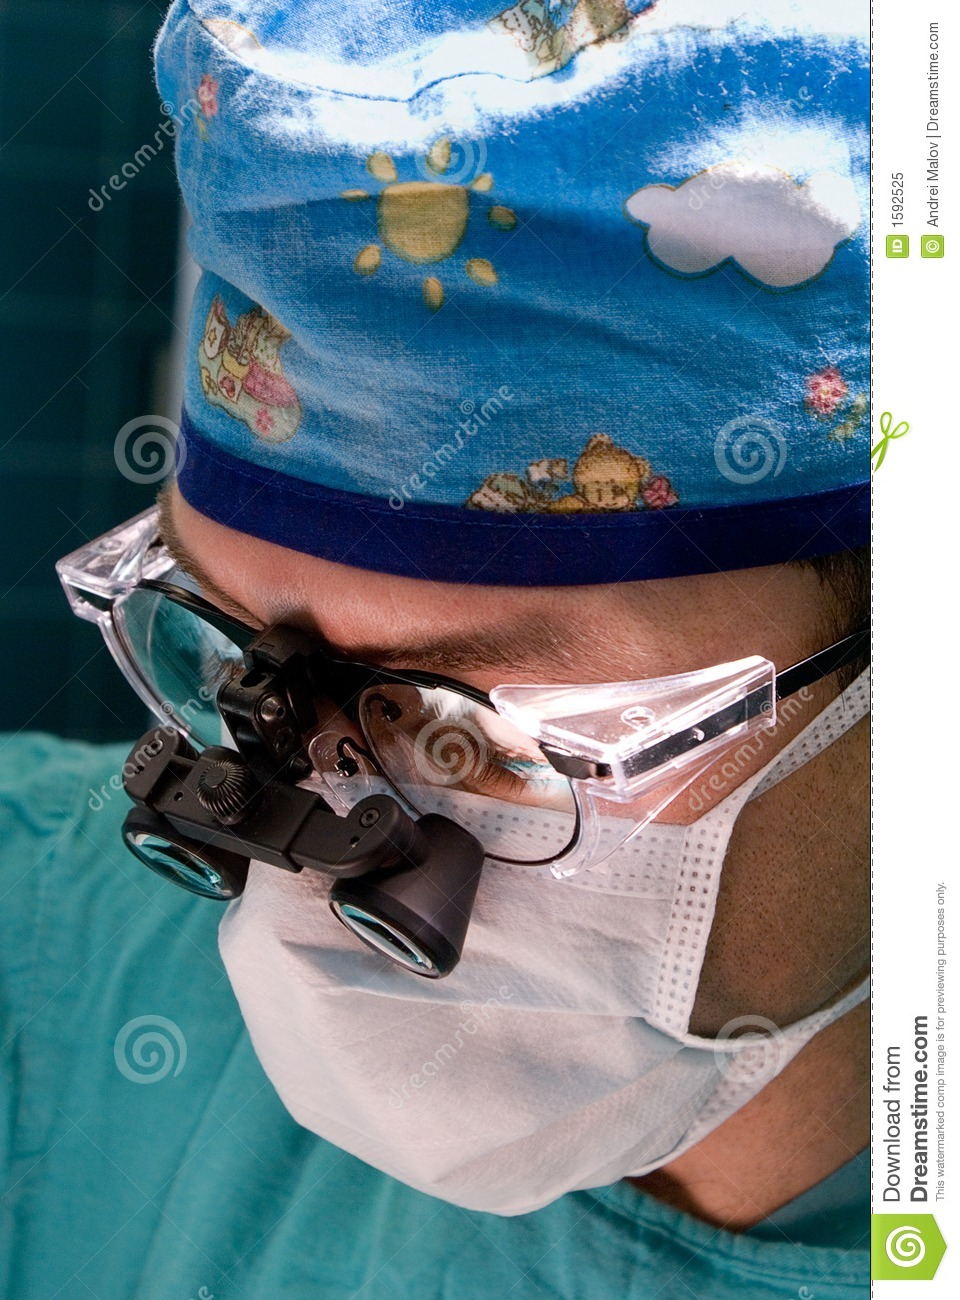 Pediatric Surgeon Royalty Free Stock Photo - Image: 1592525